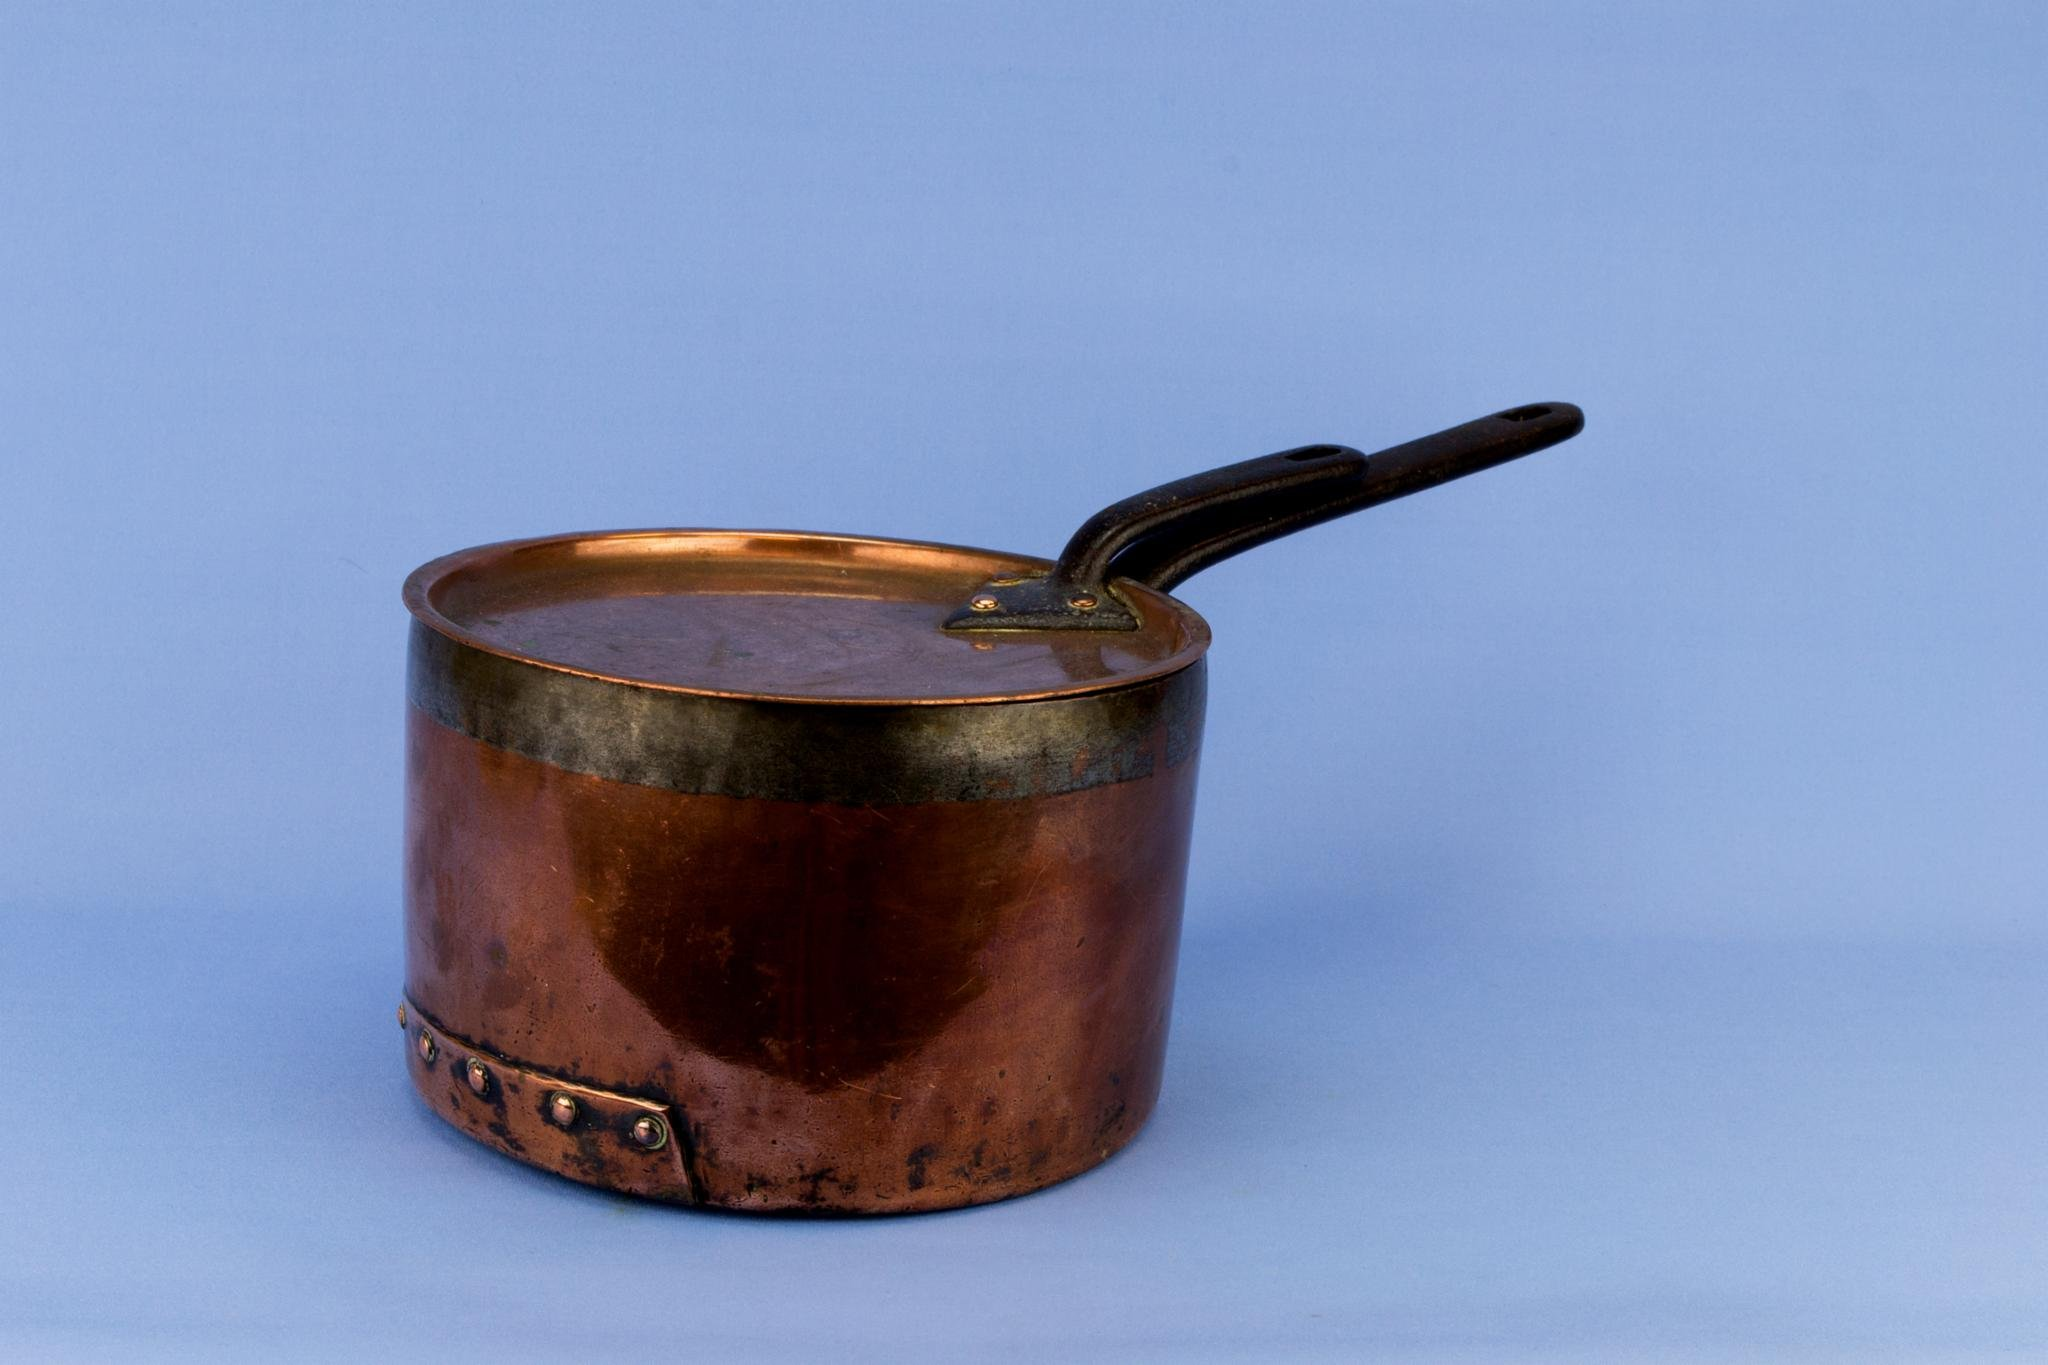 Medium Copper Pan and Lid Iron Handle Victorian Antique English 19th Century Riveted Shabby Chic